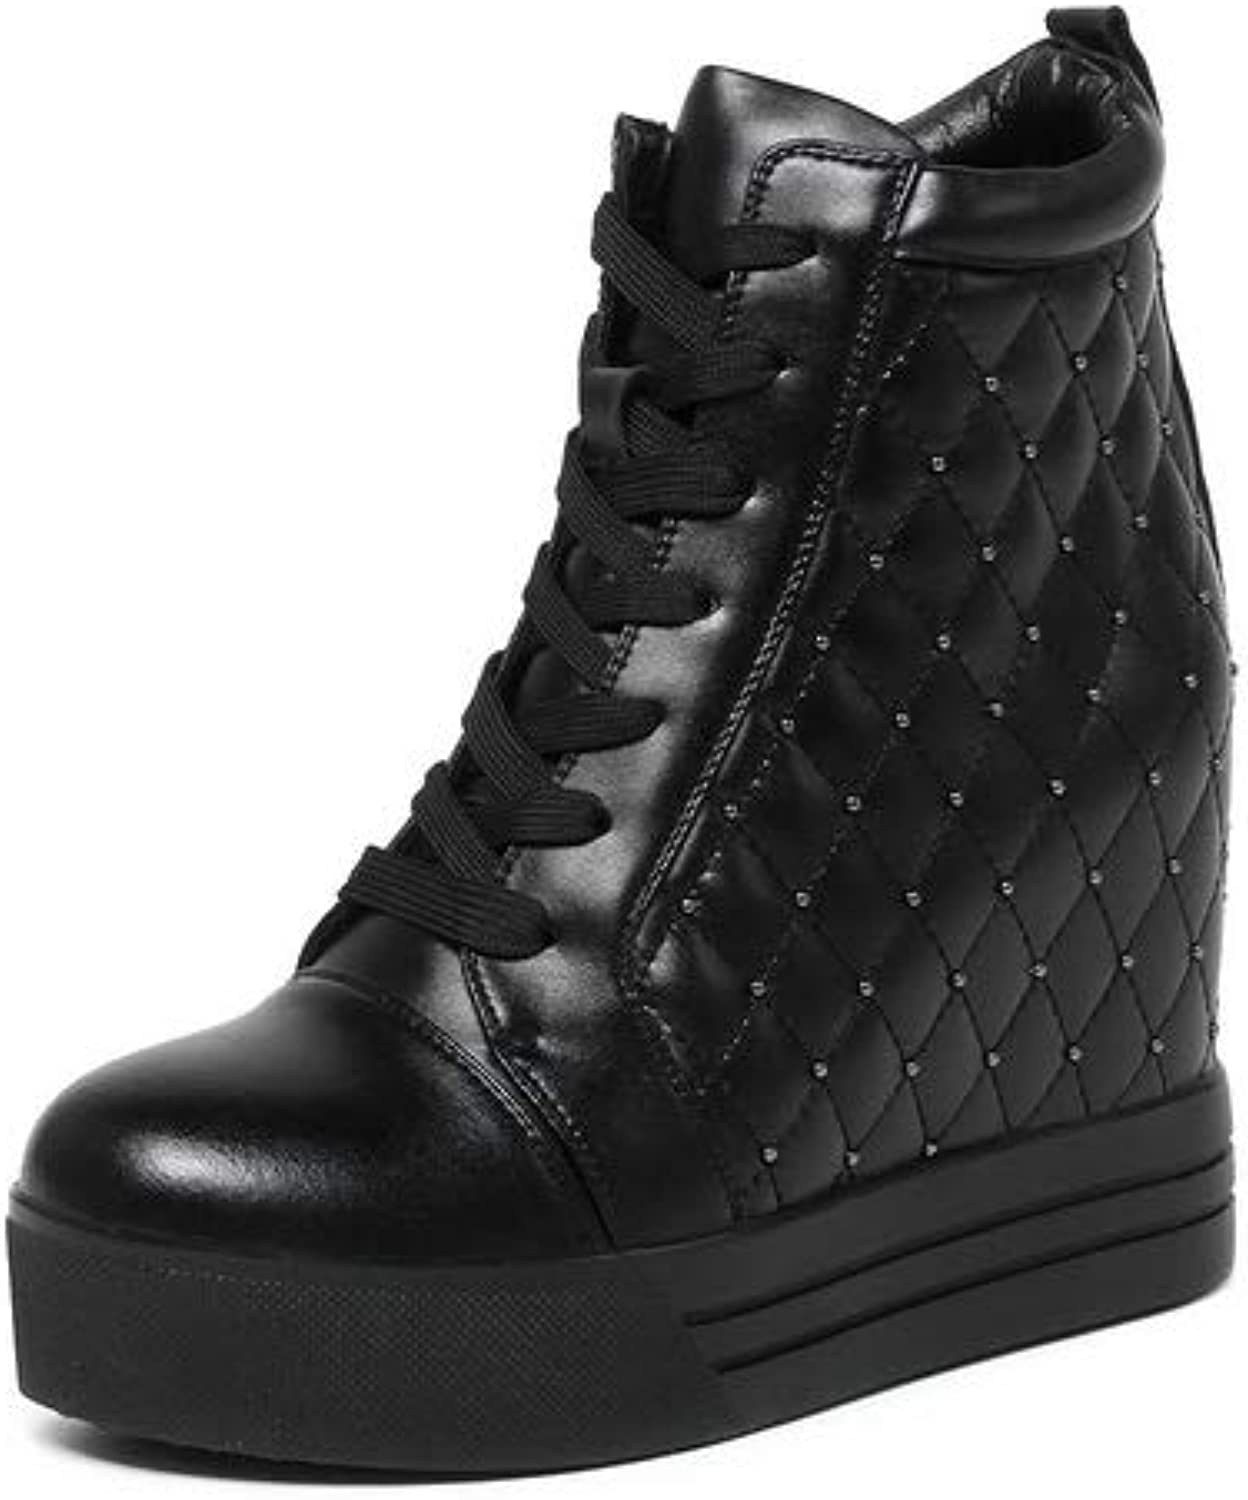 1TO9 Womens Hounds-Tooth Platform Mule Urethane Boots MNH03636